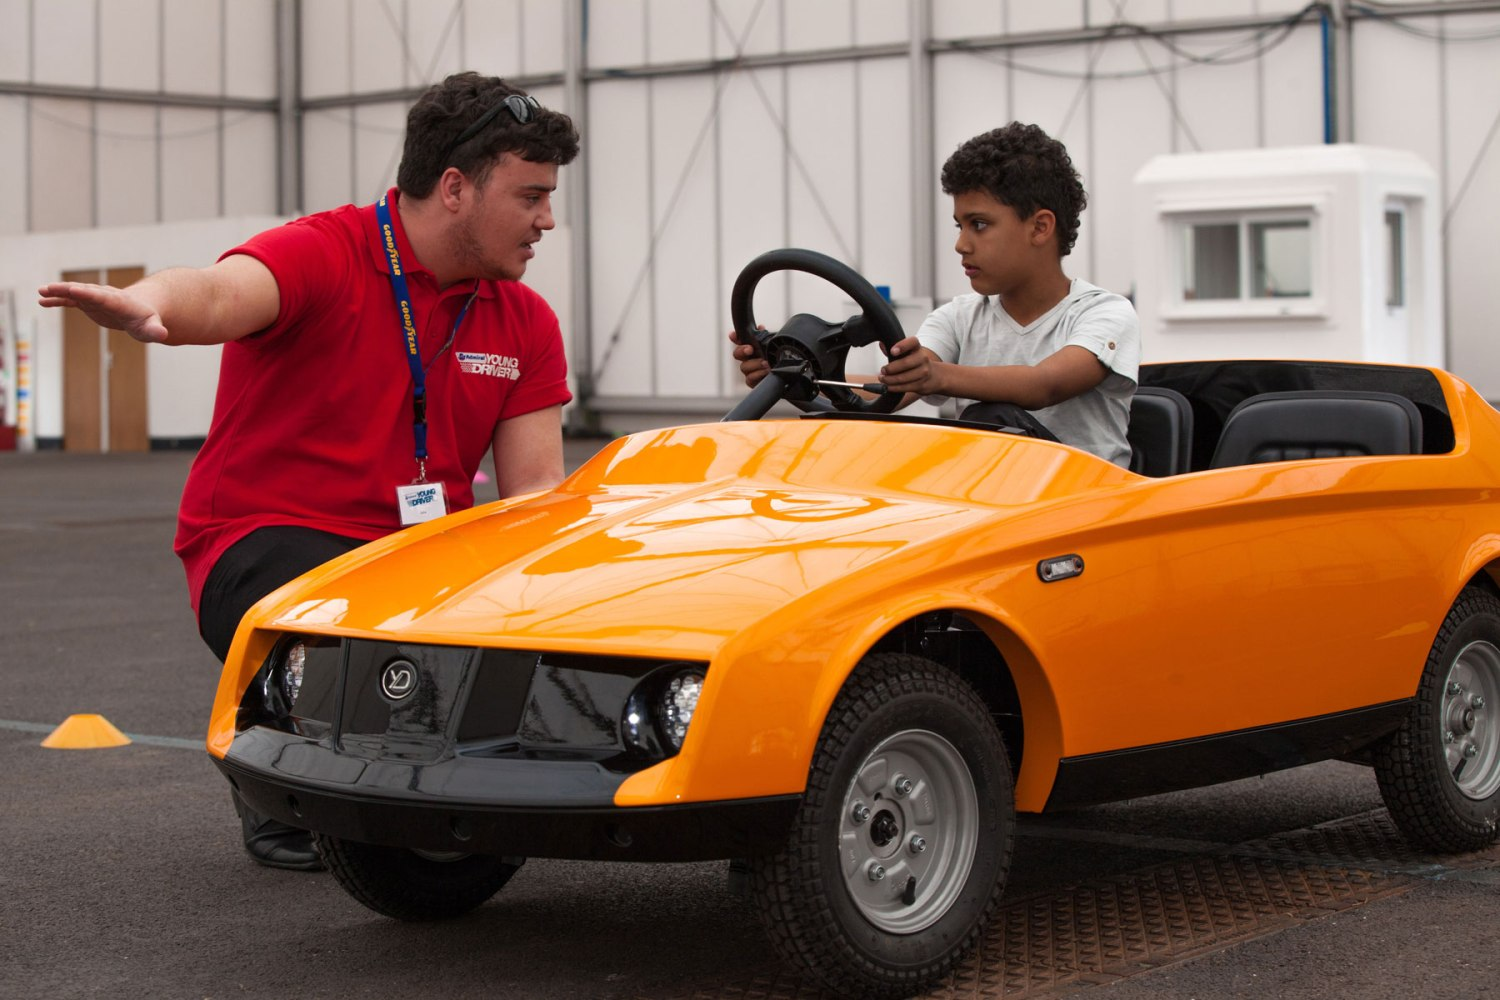 This electric car can be driven by a five-year-old